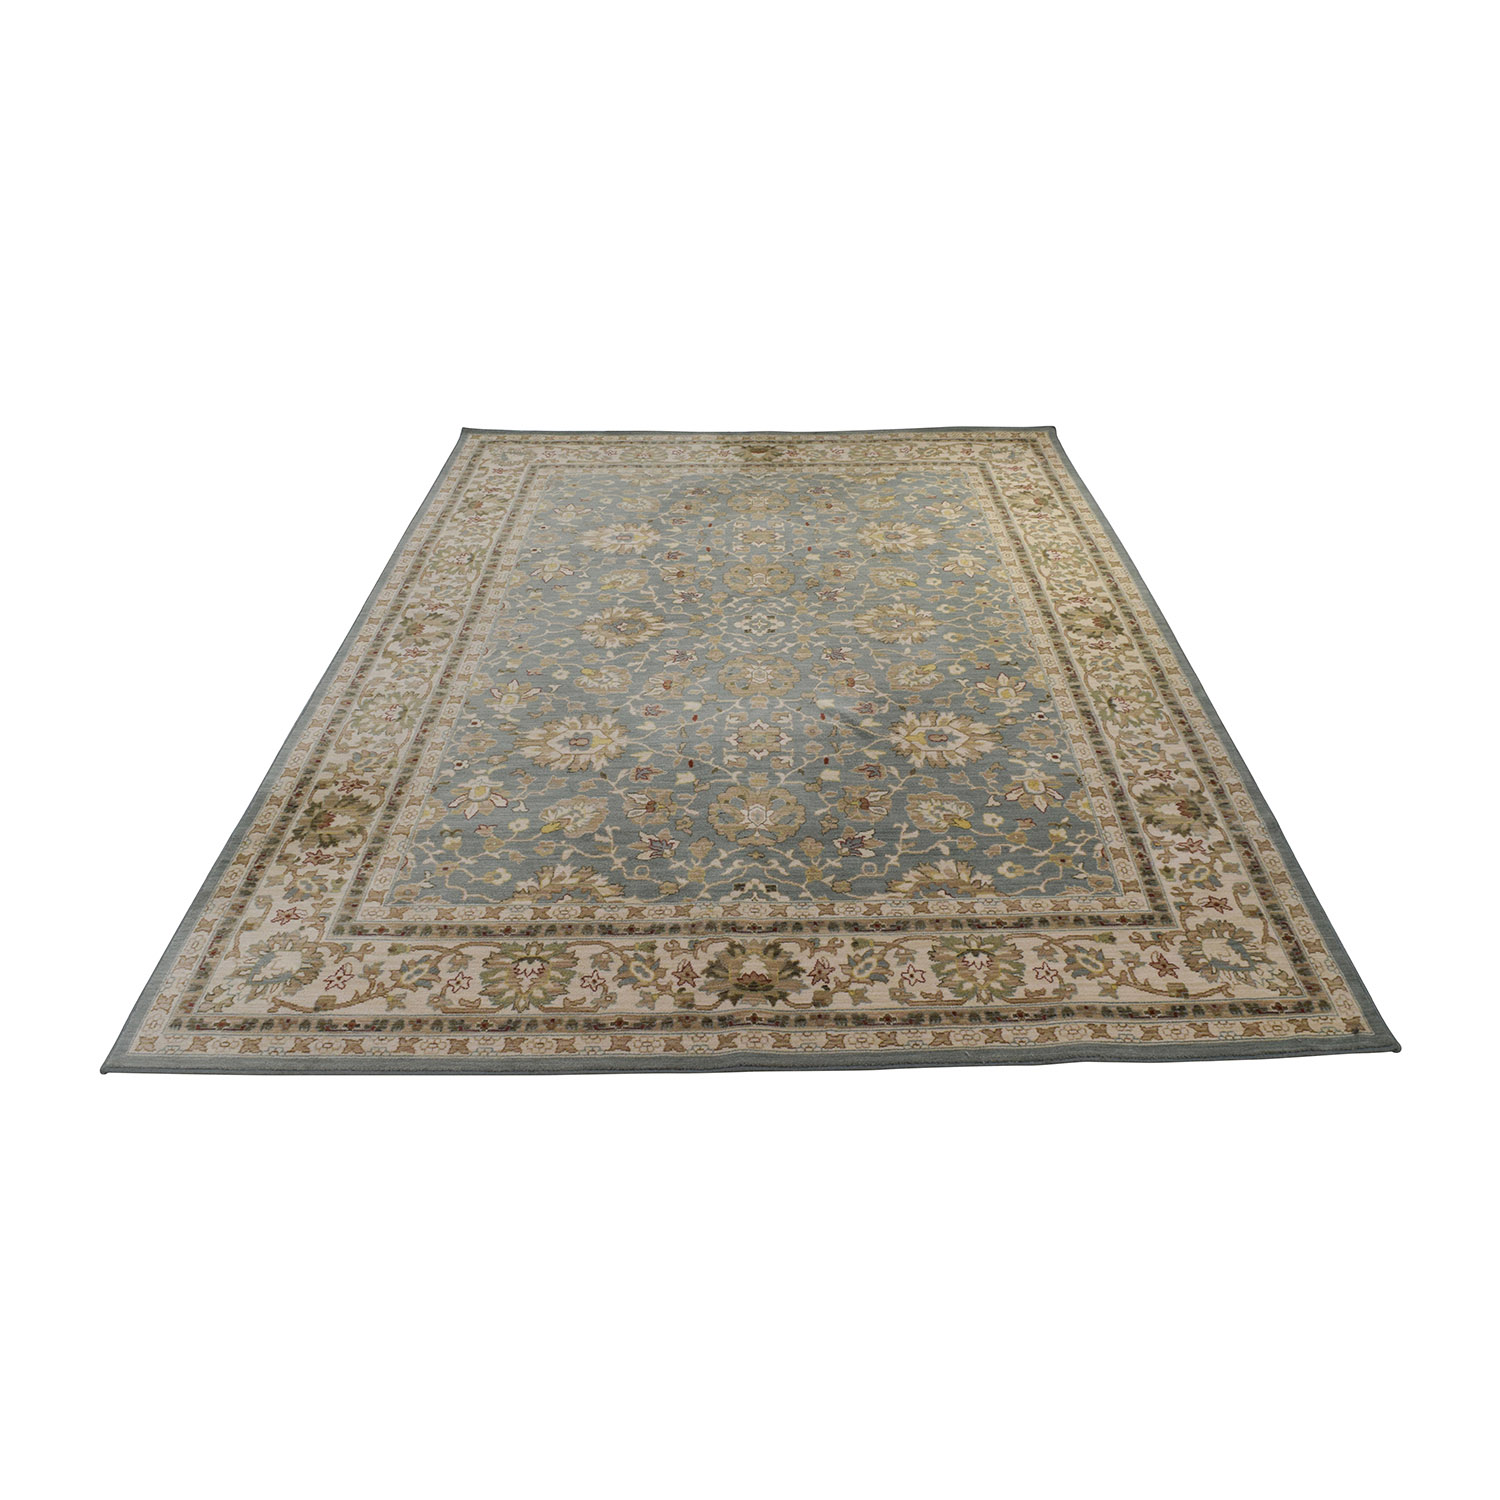 buy Green and Beige Rug Decor